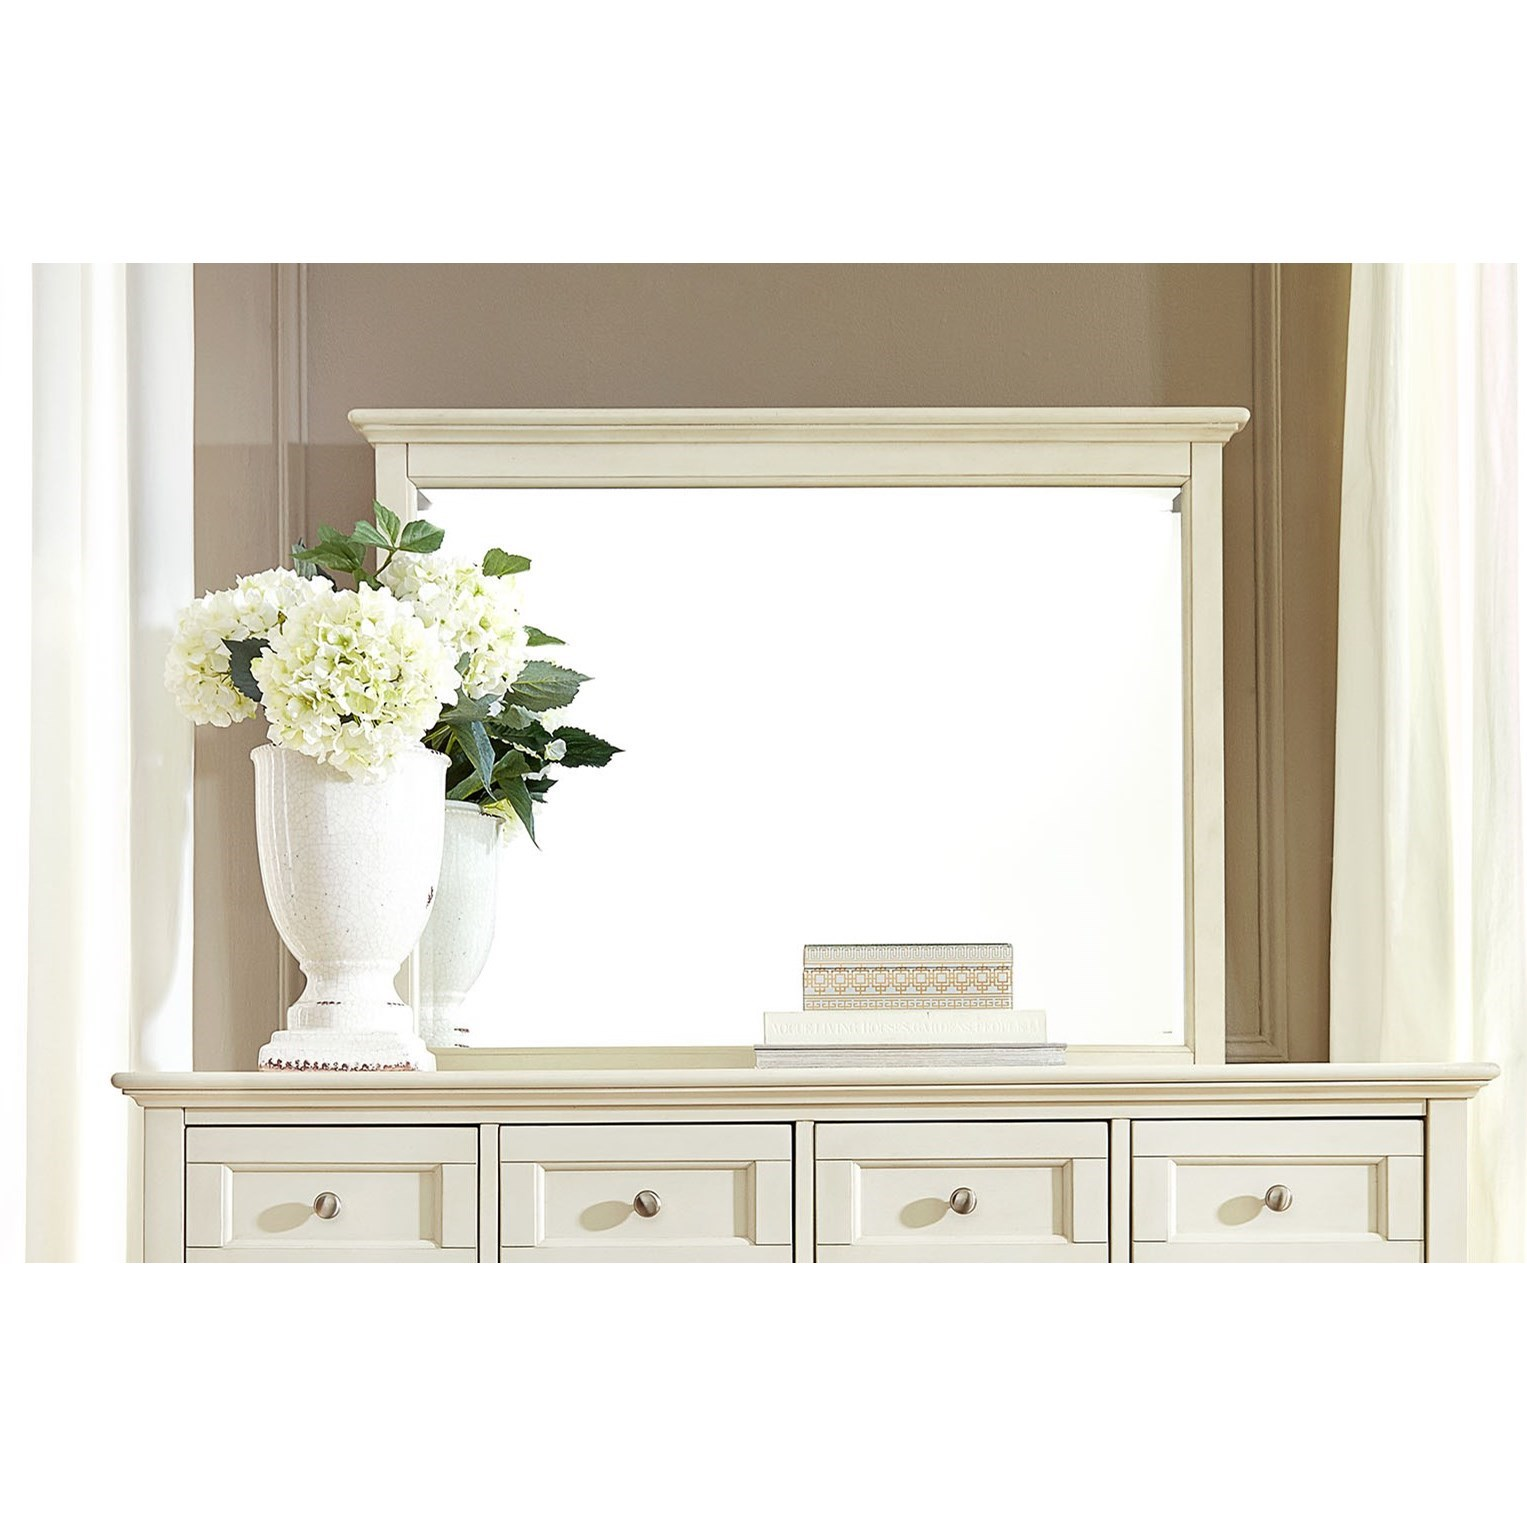 Northlake Master Mirror by A-A at Walker's Furniture